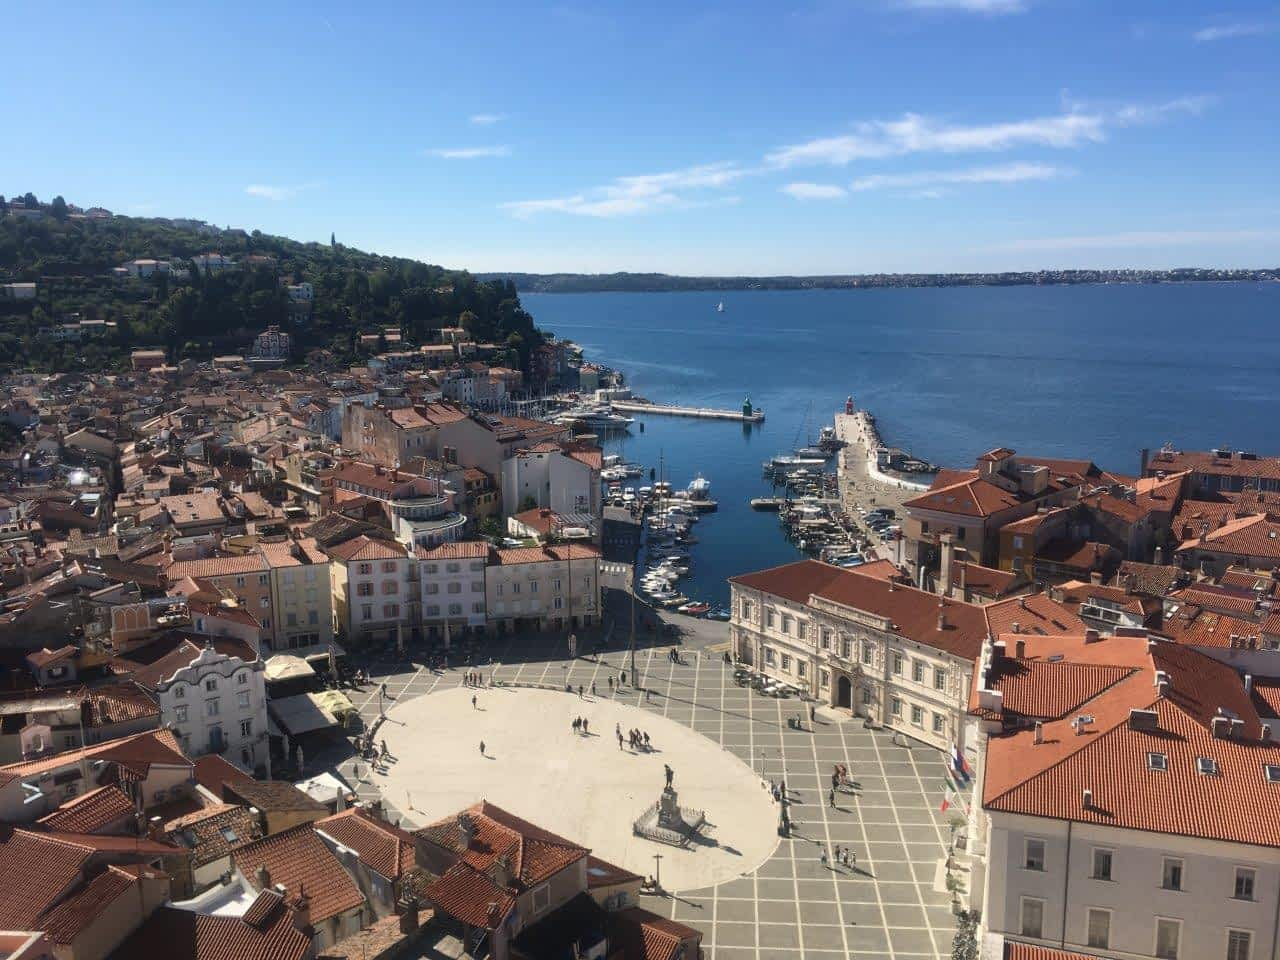 View of Tartini Square in Piran from the Bell Tower